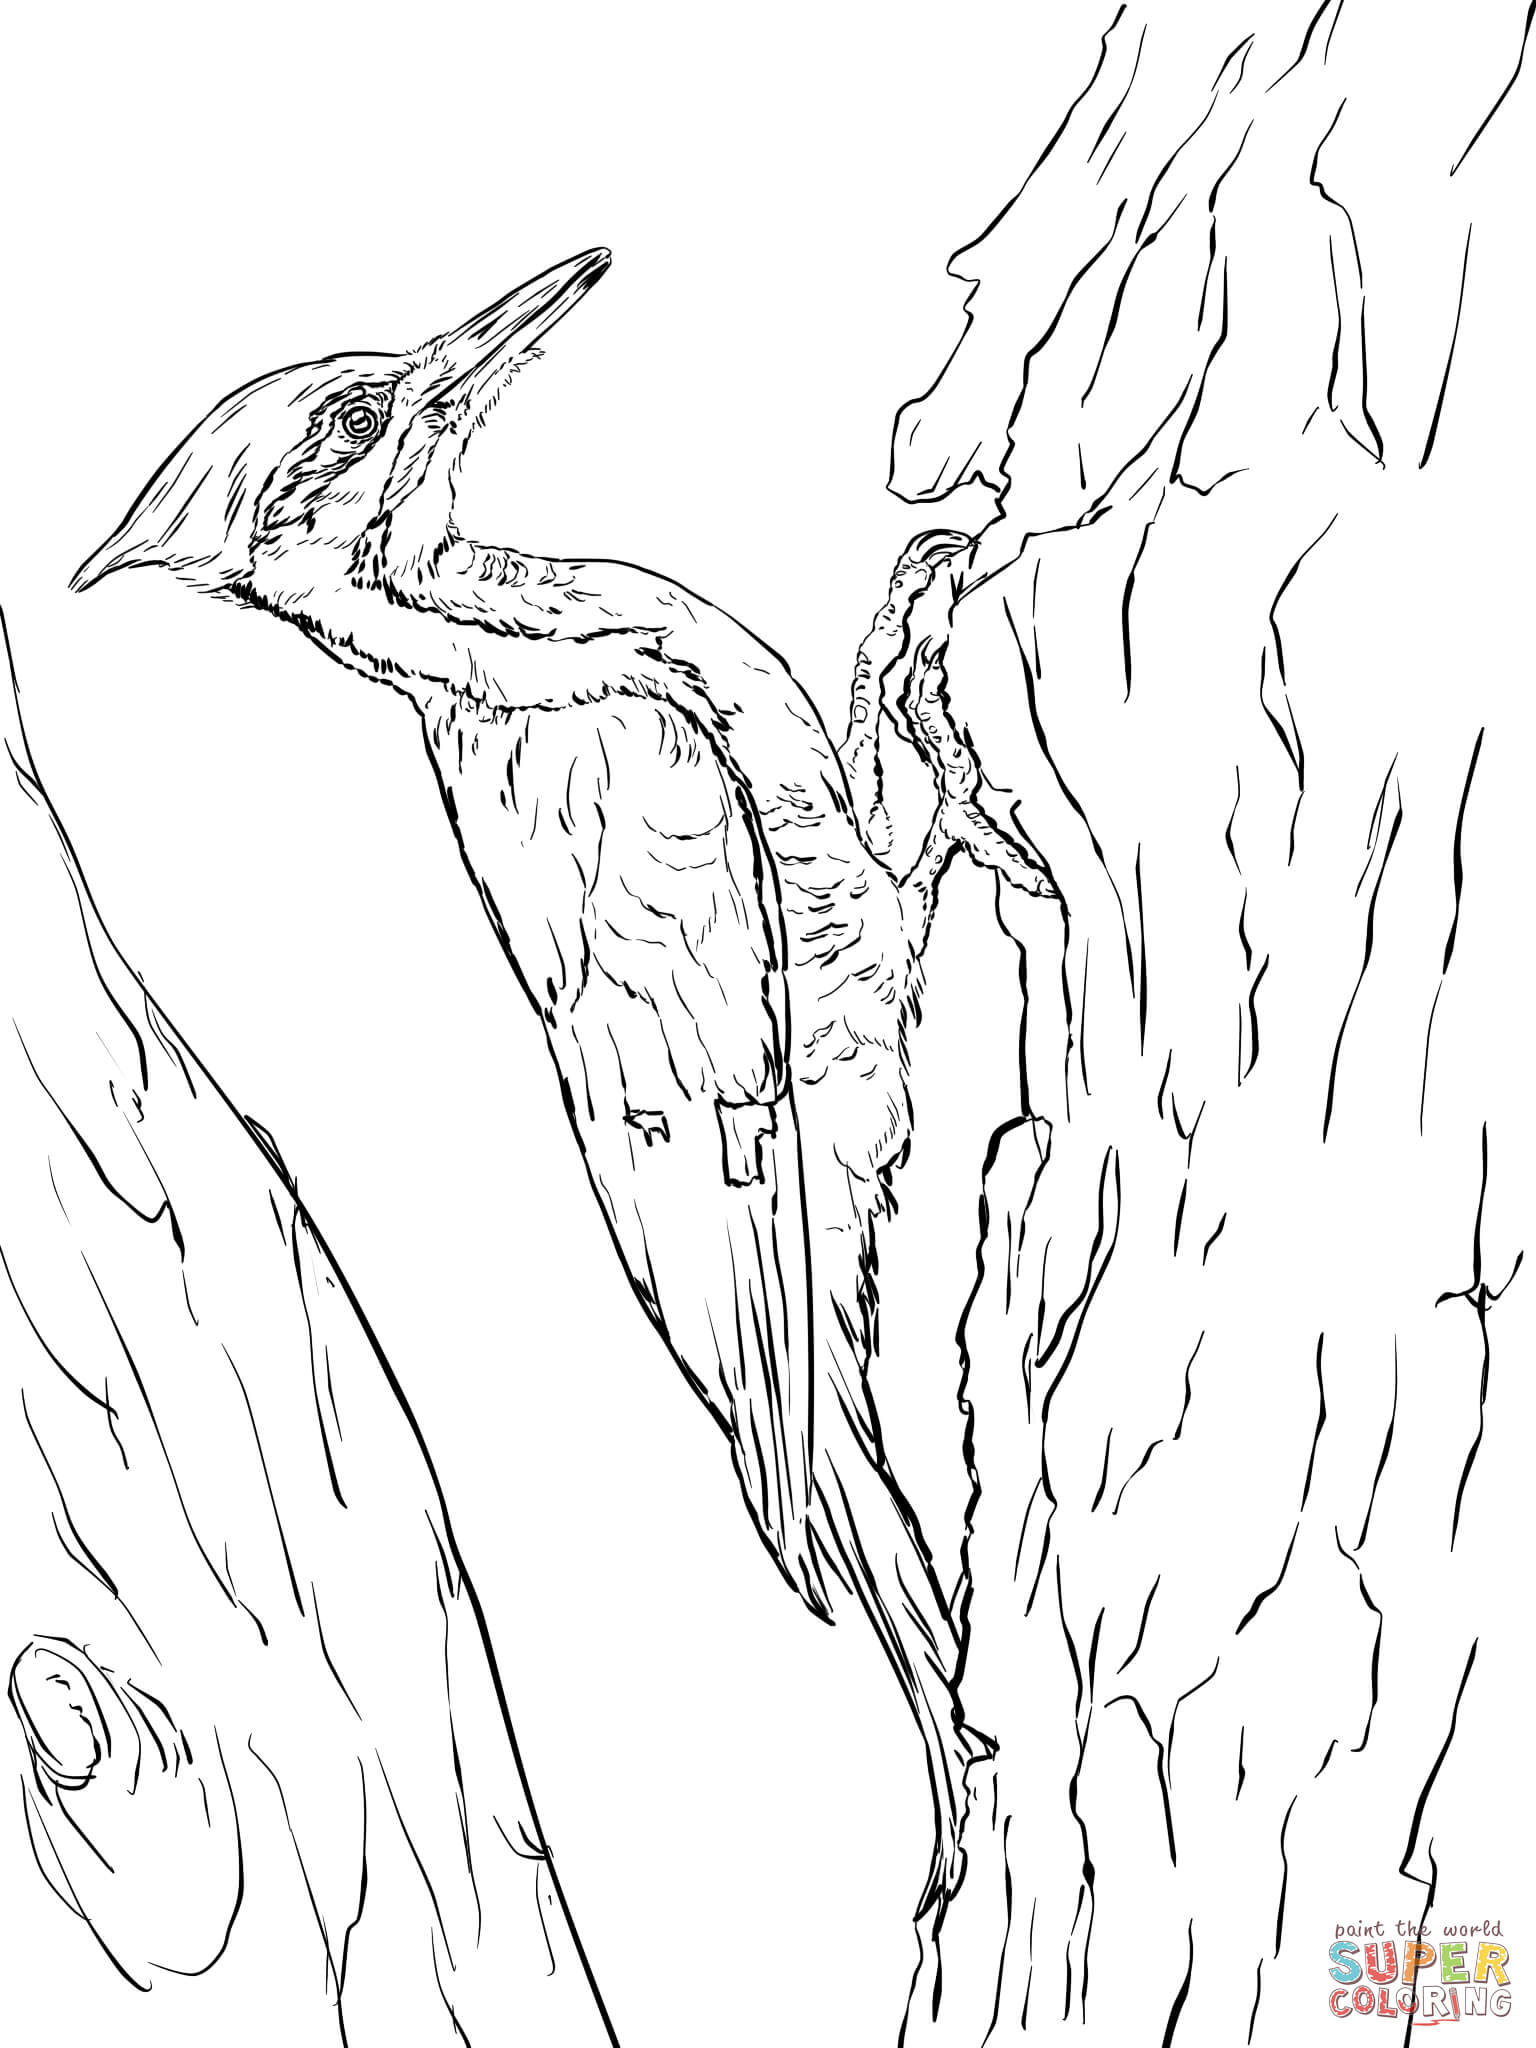 Pileated Woodpecker Drawing At Getdrawings Com Free For Personal